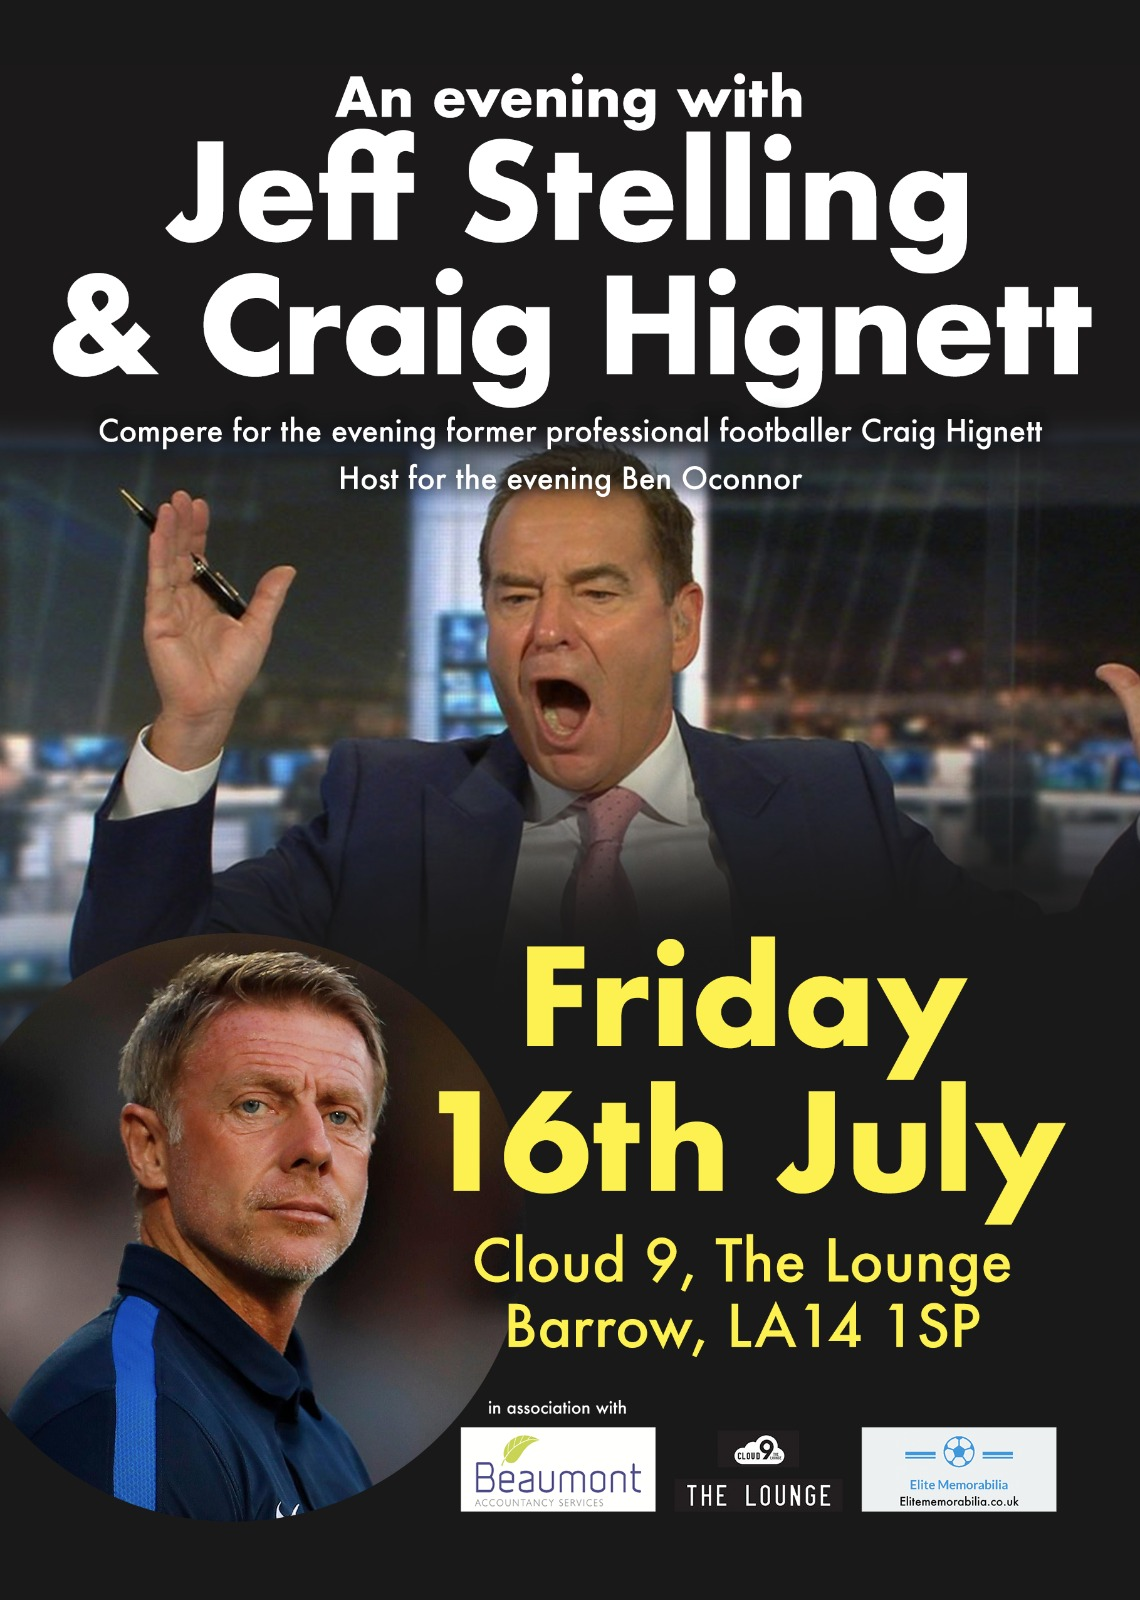 Soccer Saturday with Jeff Stelling & Craig Hignett